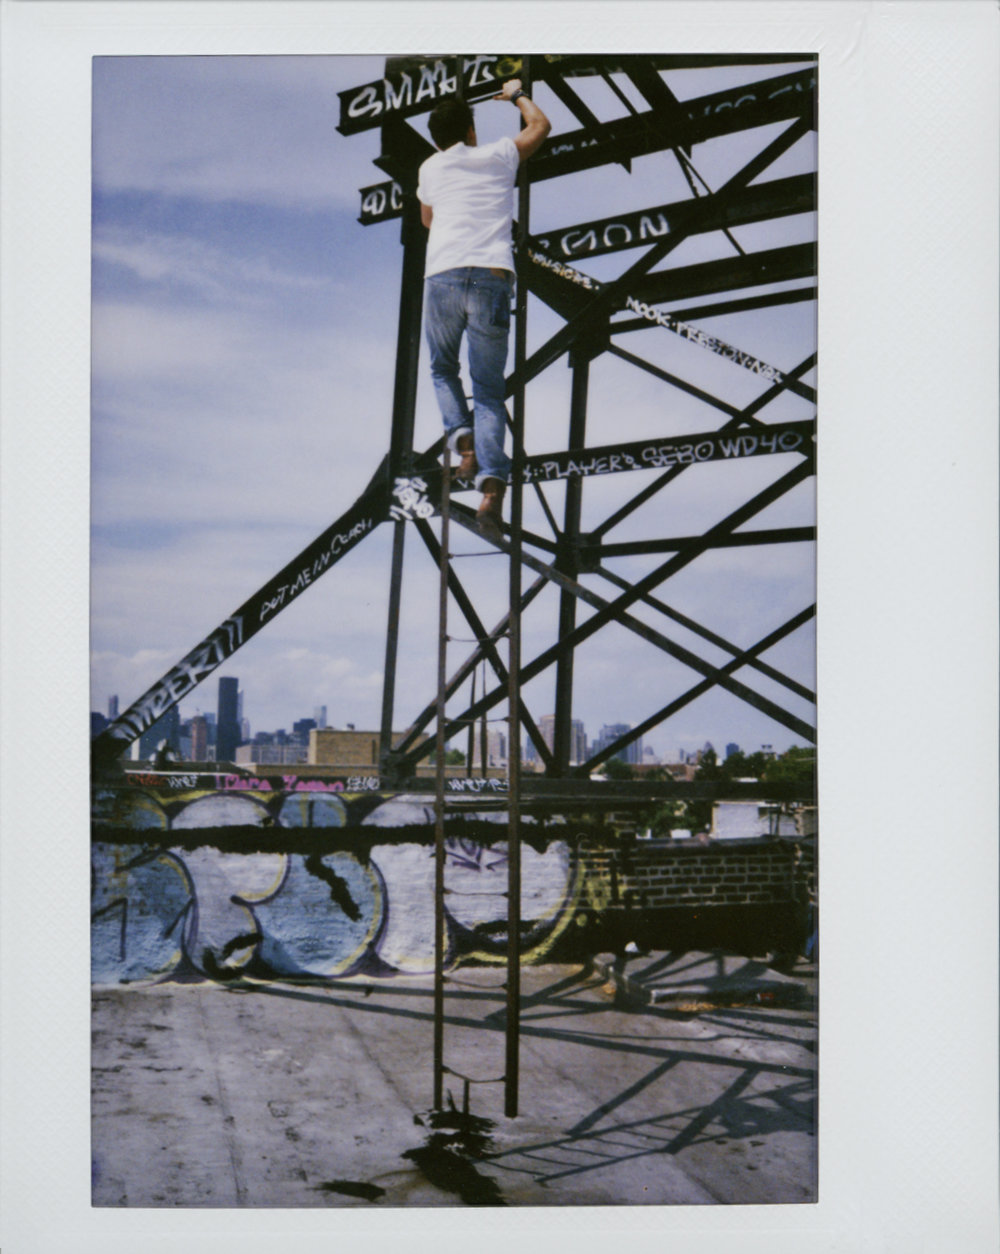 nyc+instax1+copy.jpg